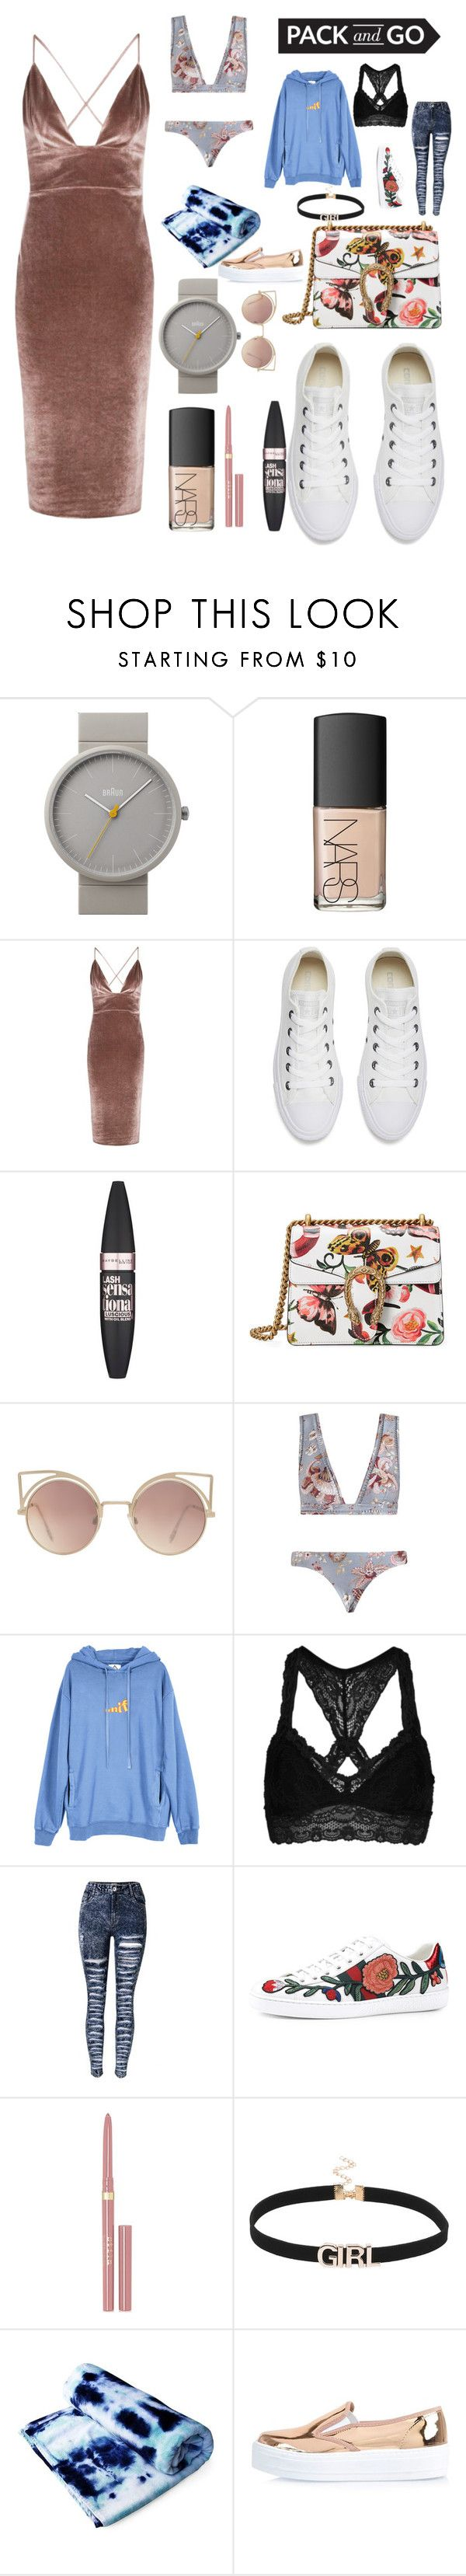 """rode trip"" by walllflowerr ❤ liked on Polyvore featuring Braun, NARS Cosmetics, Boohoo, Converse, Maybelline, Gucci, MANGO, Zimmermann, UNIF and Topshop"